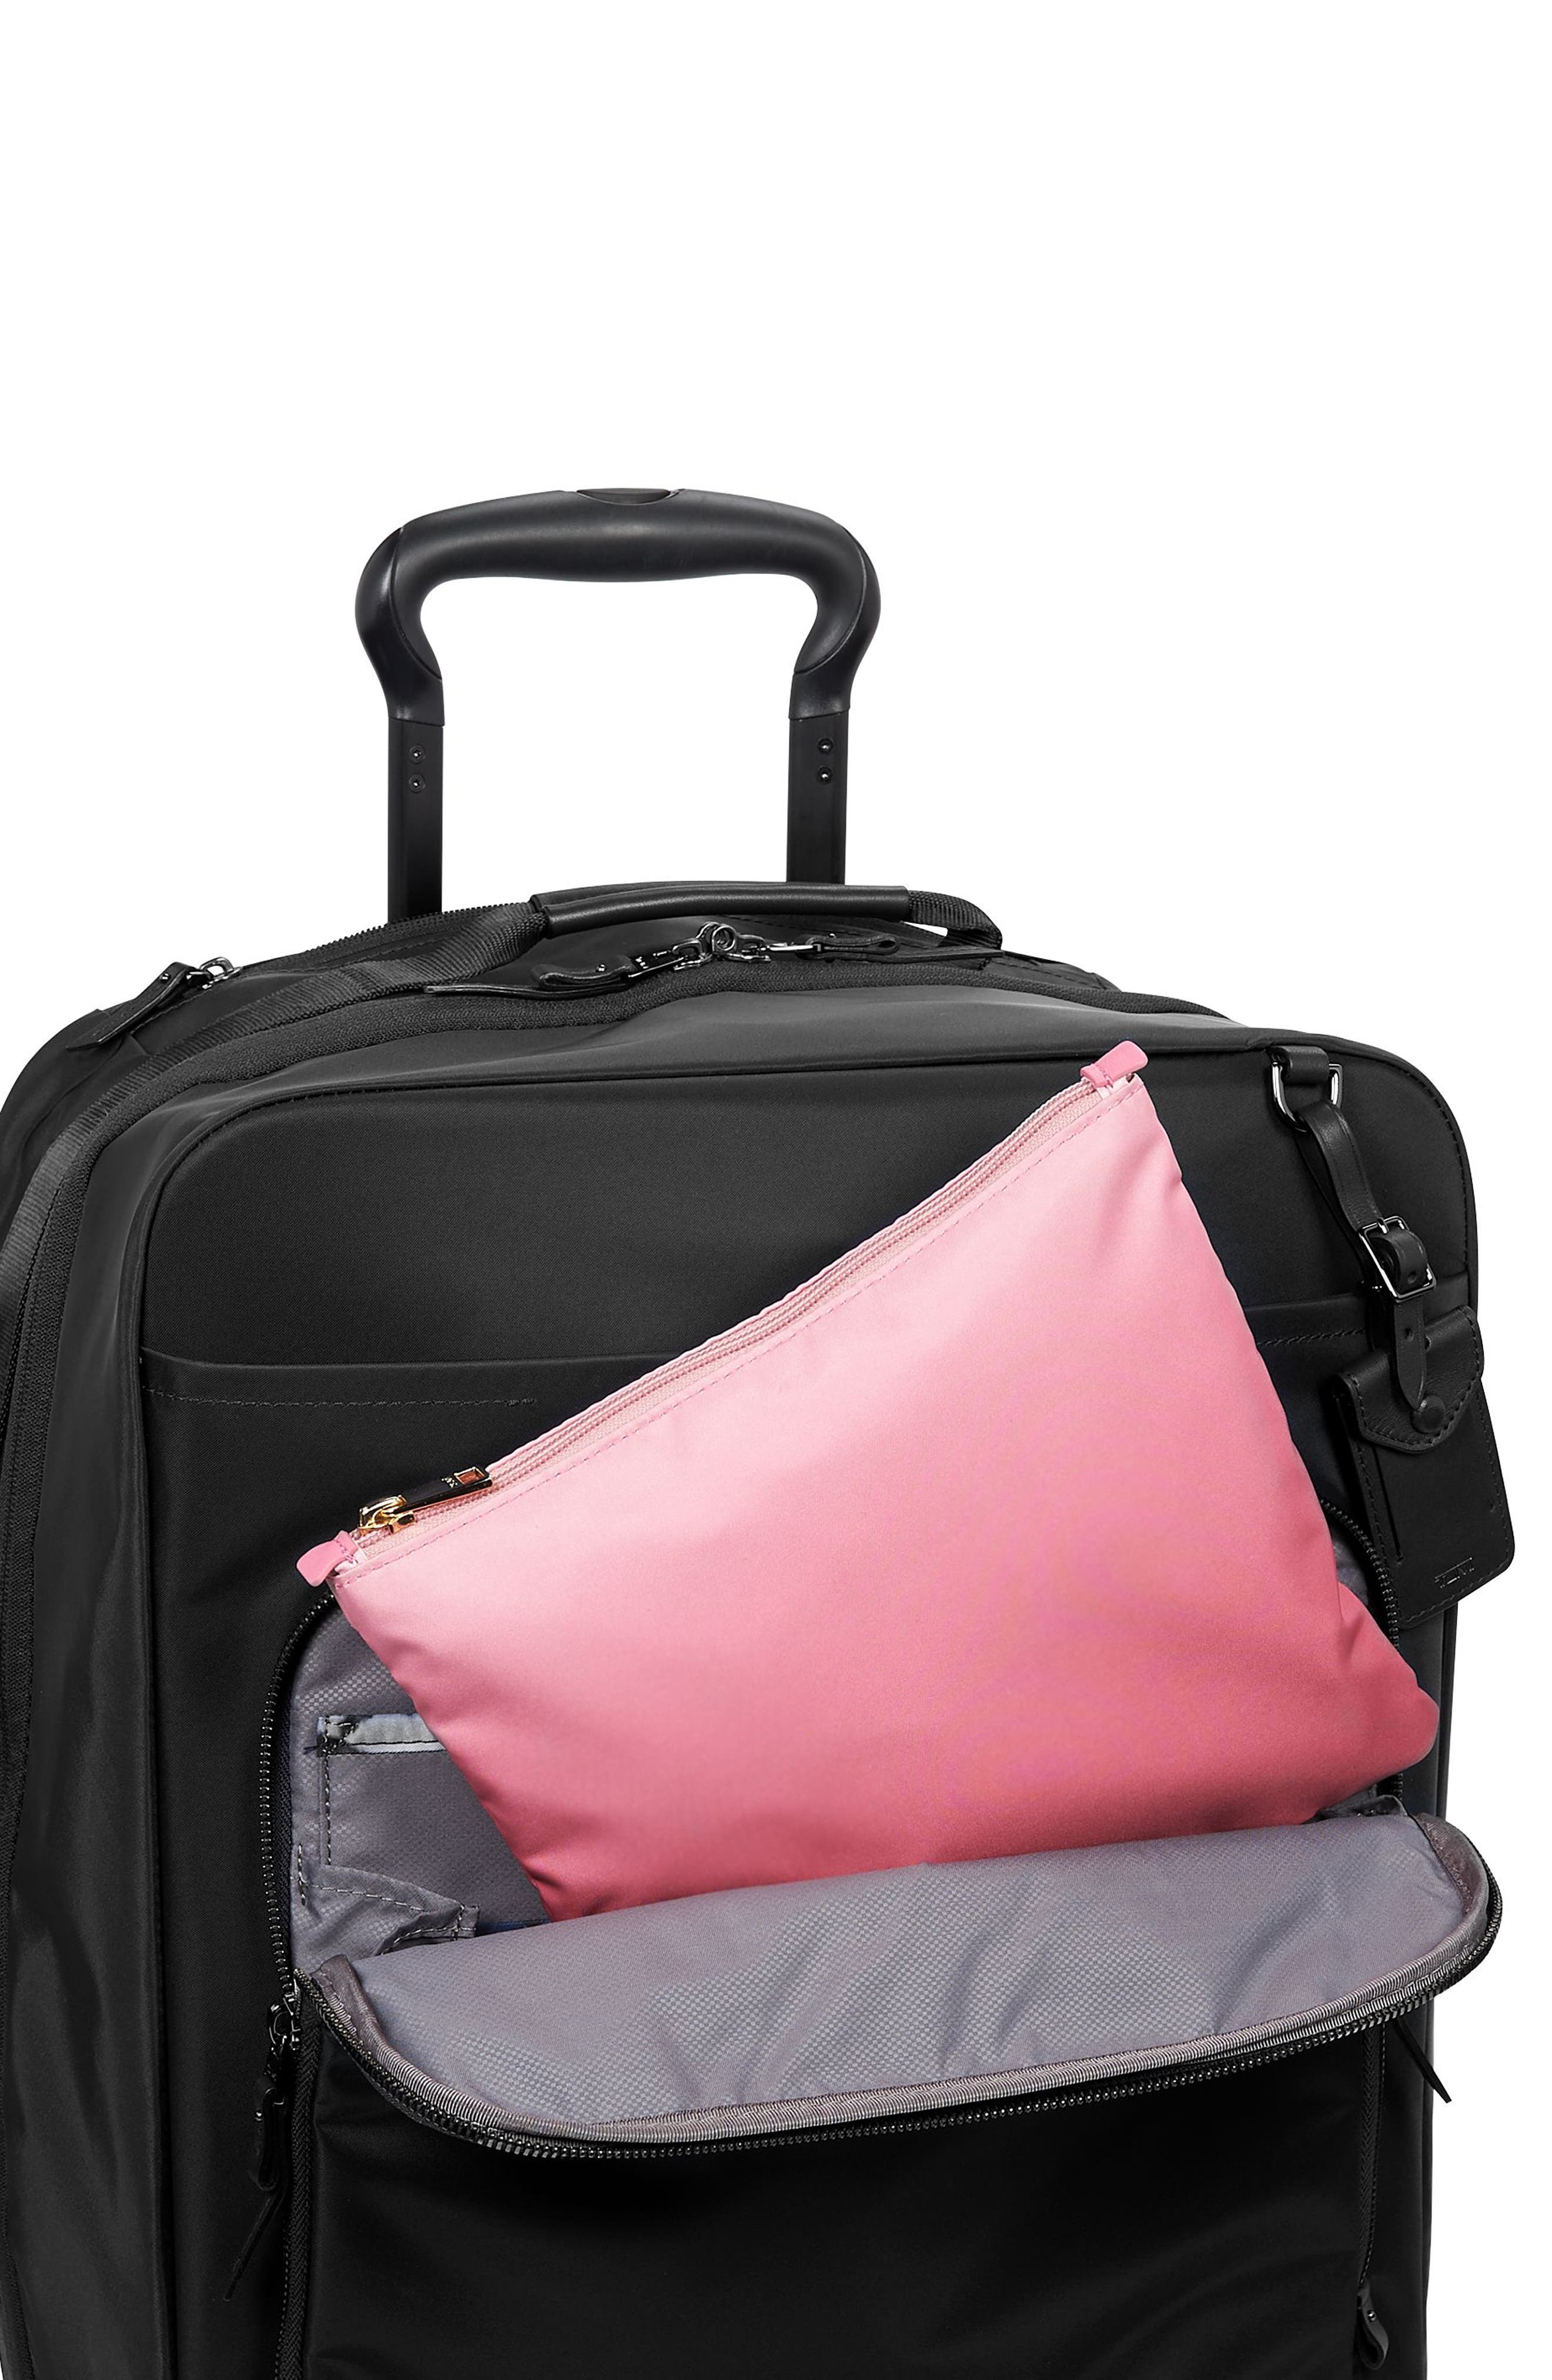 Voyageur - Just in Case Nylon Travel Backpack,                             Alternate thumbnail 6, color,                             PINK OMBRE